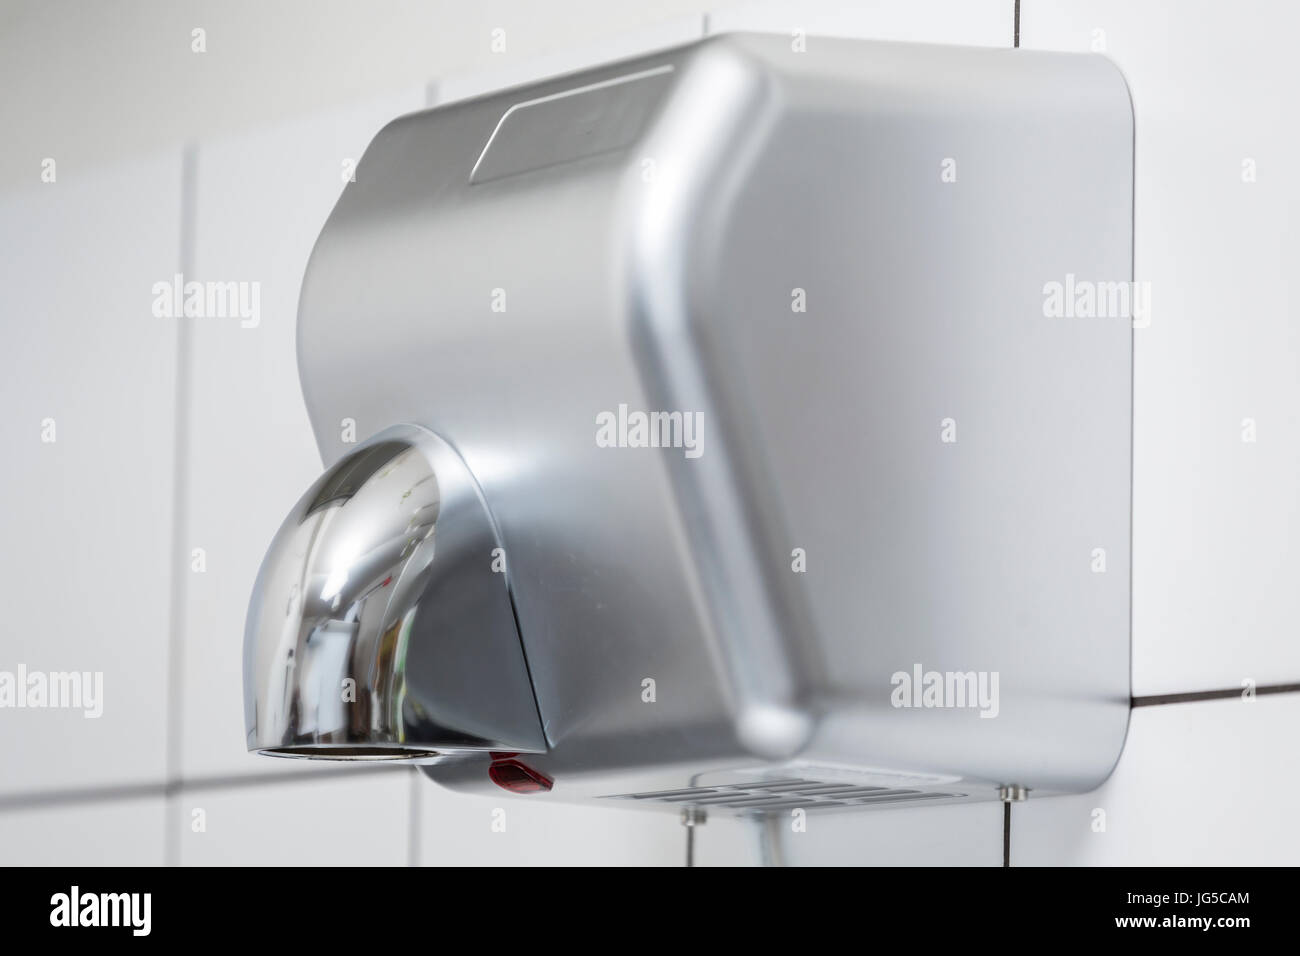 Händetrockner World Dryer Hand Dryer Stockfotos Hand Dryer Bilder Alamy